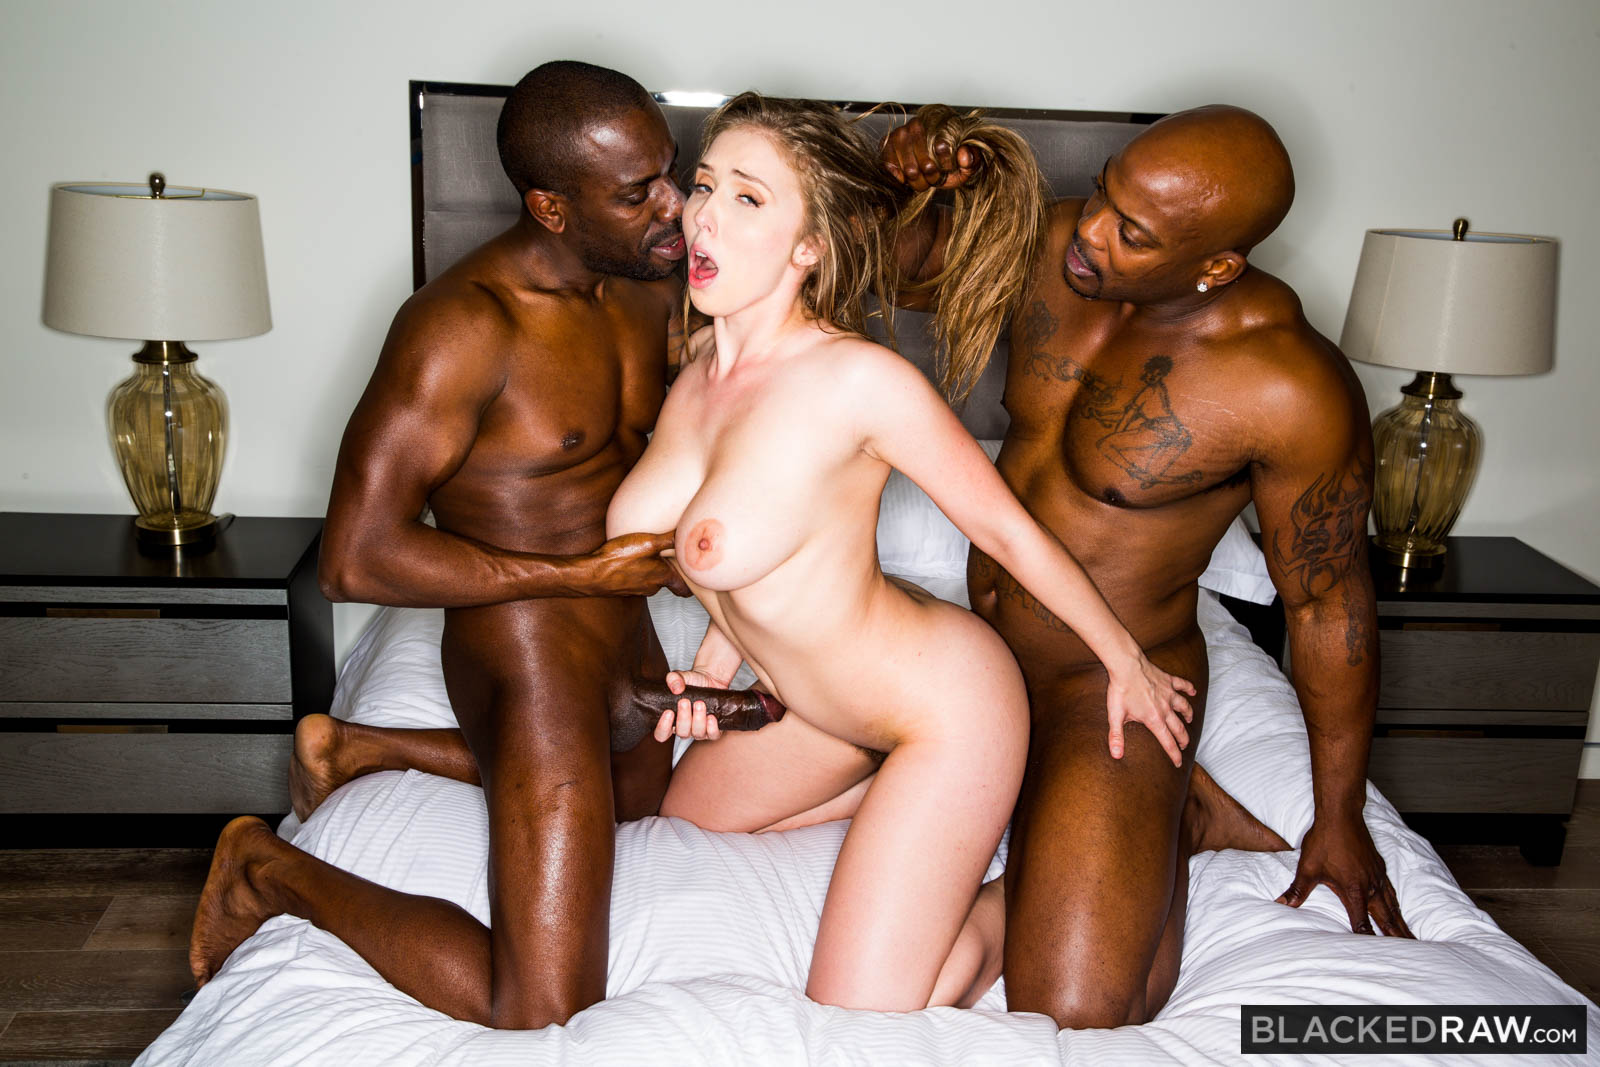 Blacked raw double for me lena paul with nat turnher joss lescaf